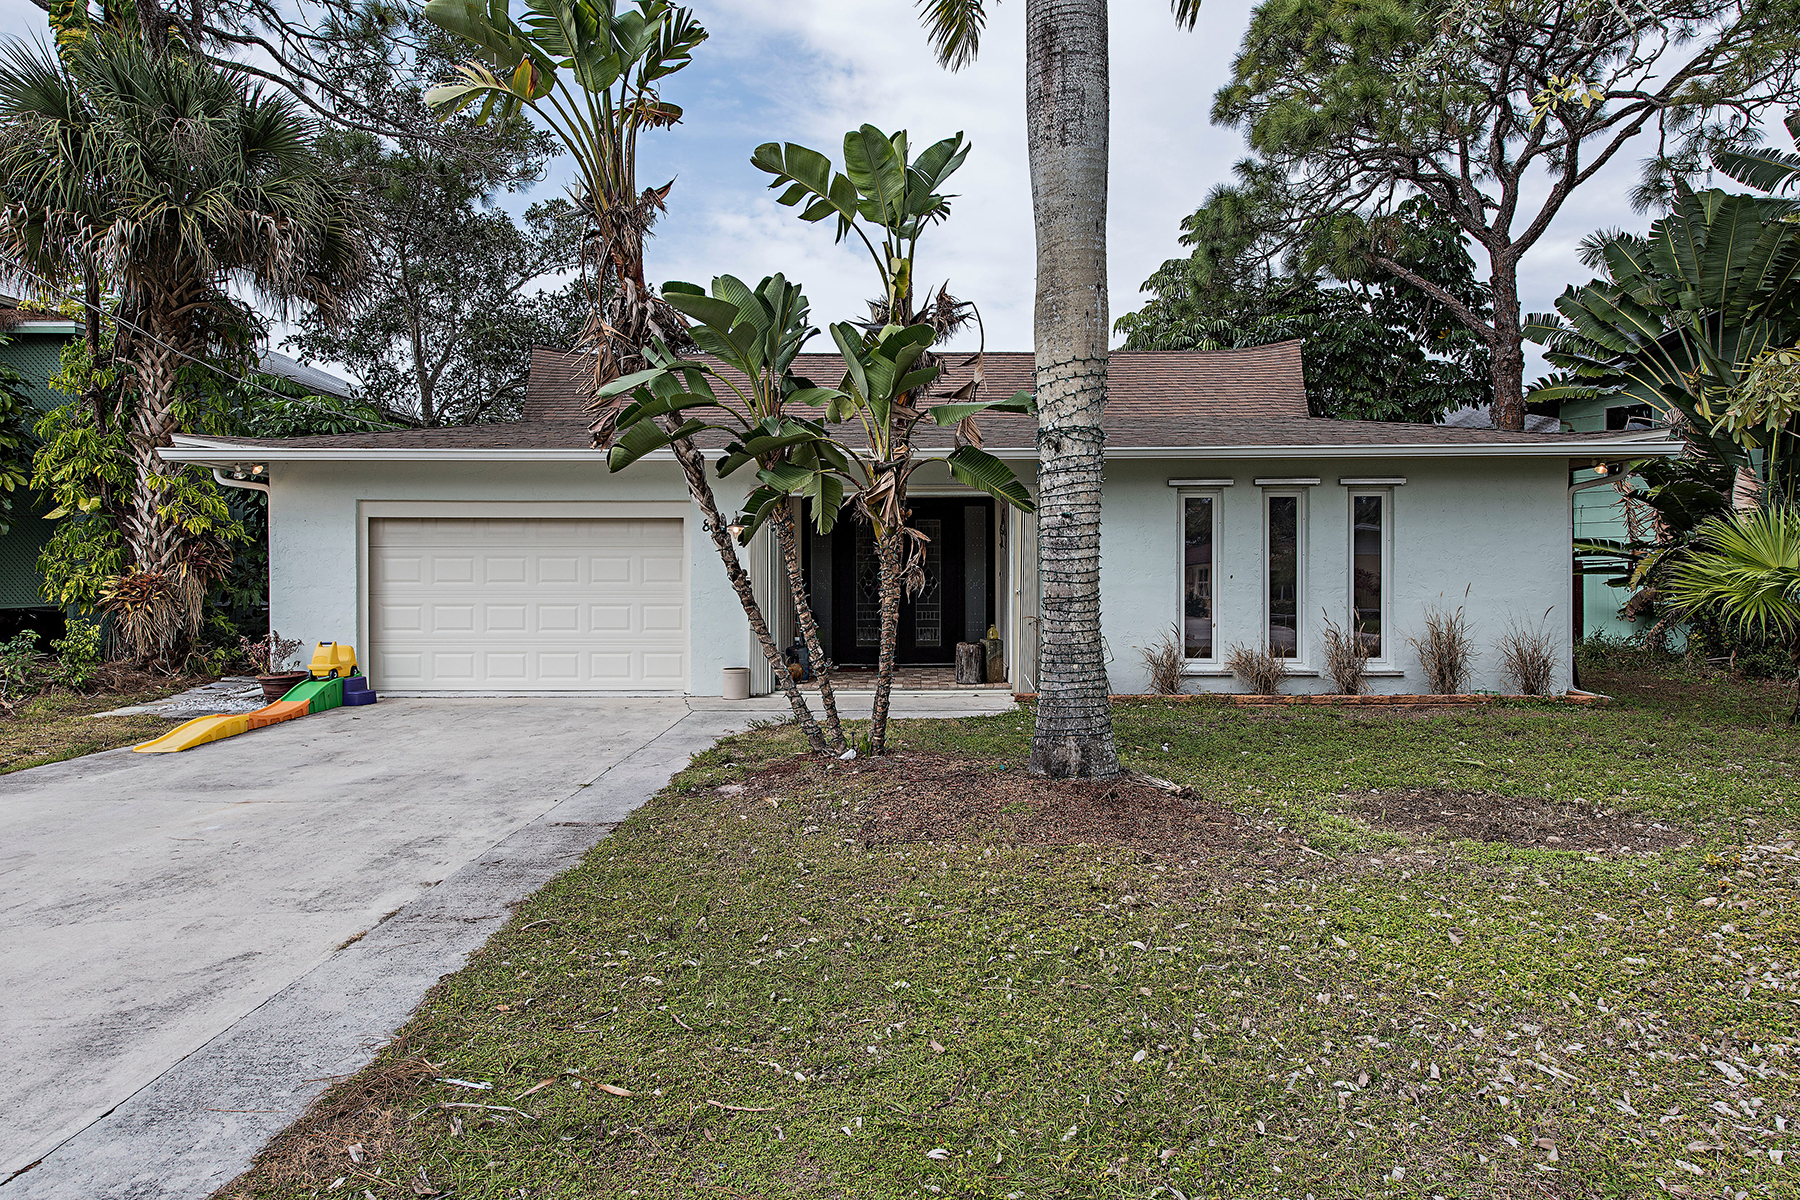 Single Family Home for Sale at PALM RIVER - PALM RIVER SHORES 85 Shores Ave Naples, Florida, 34110 United States